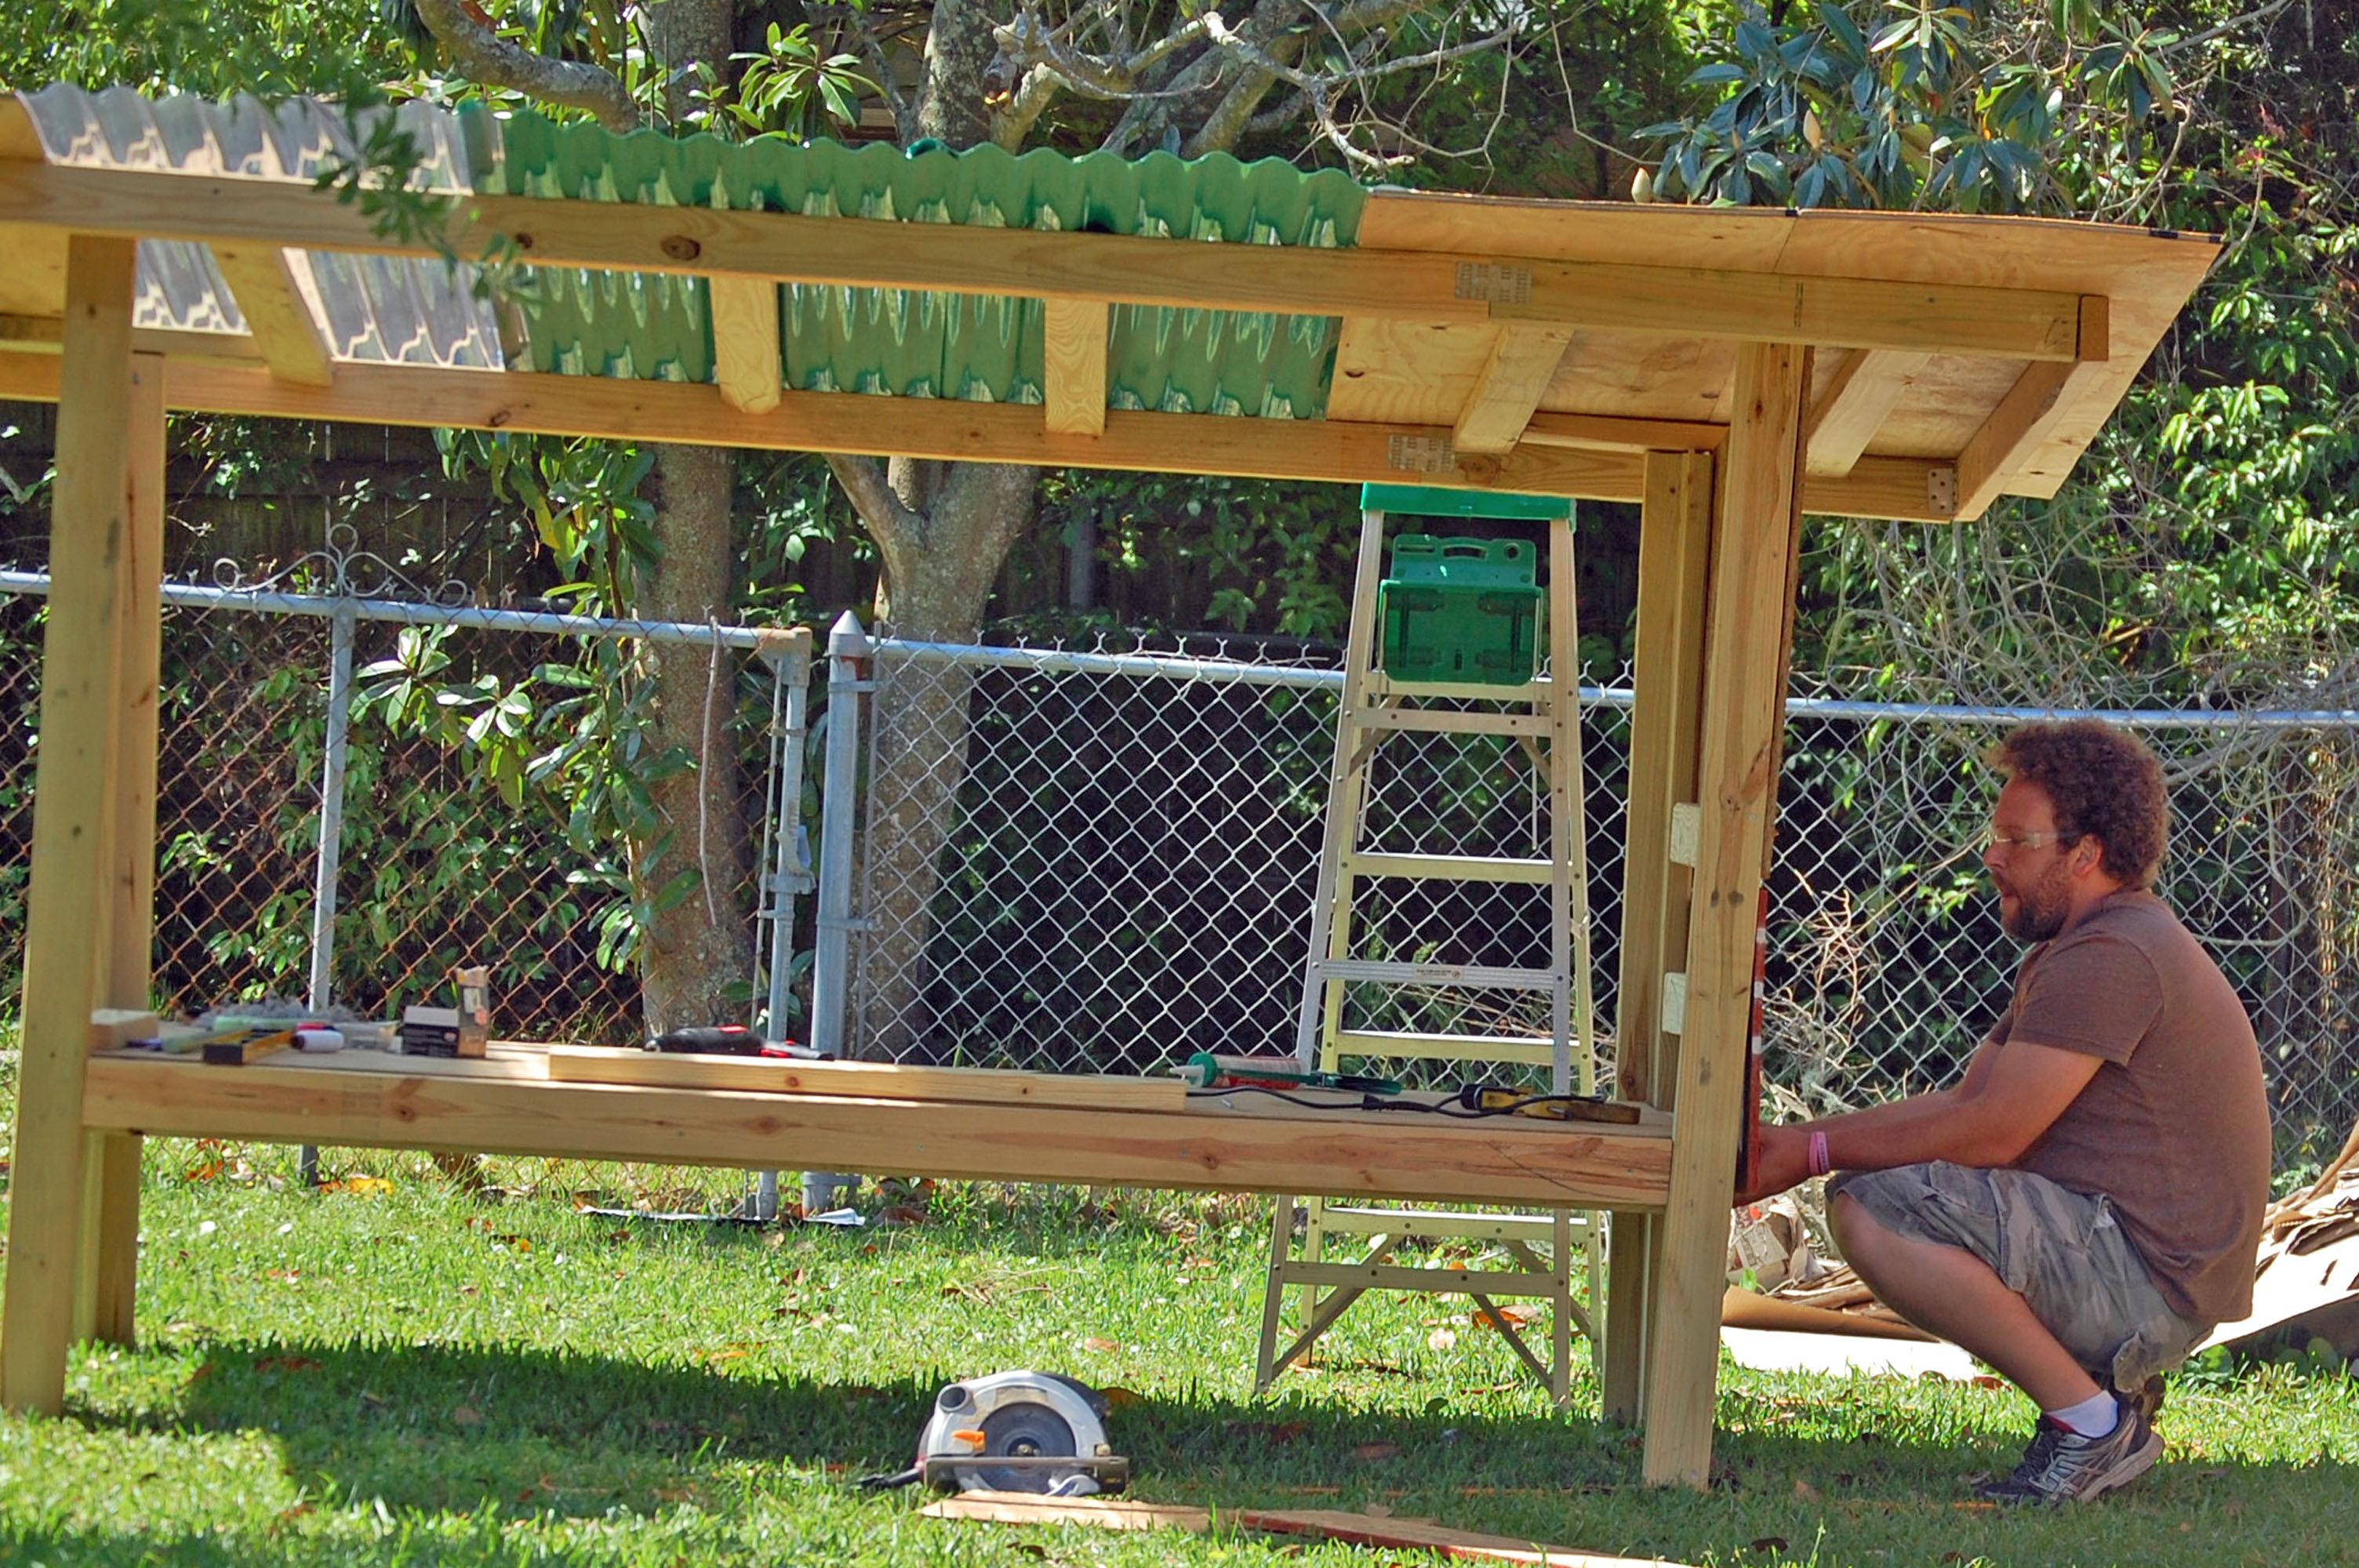 Best ideas about DIY Chicken Coop Plans . Save or Pin Our DIY Chicken Coop From Recycled Materials Now.